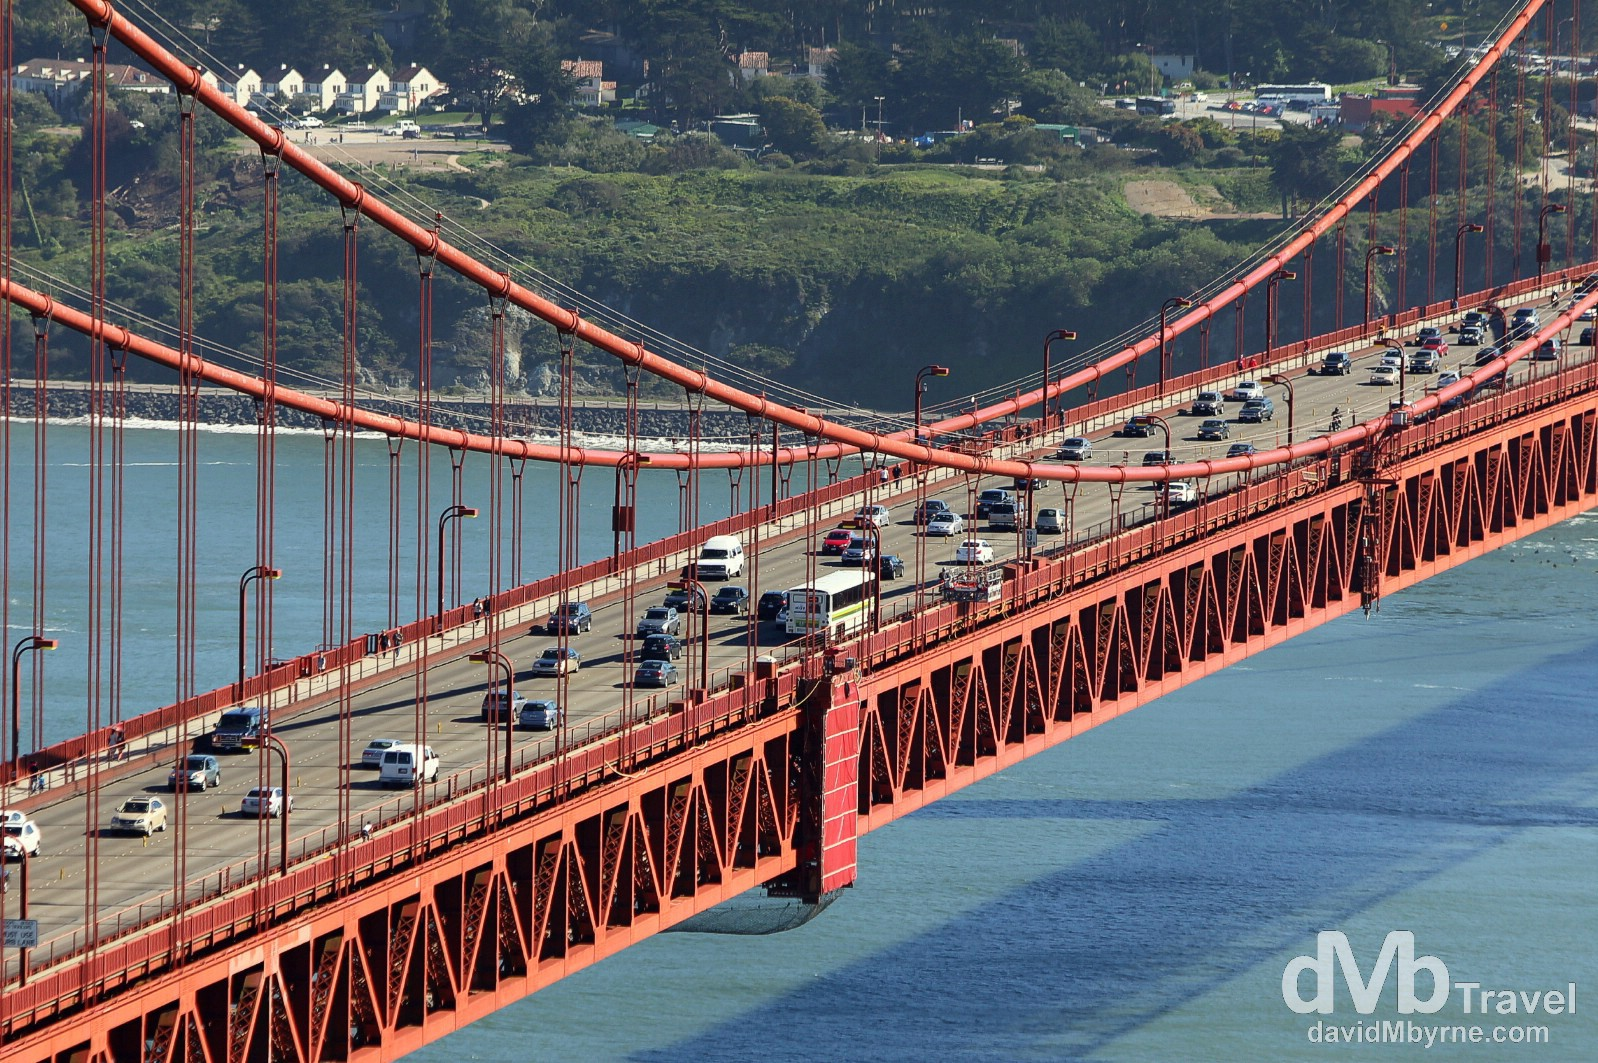 Traffic on the central span of the Golden Gate Bridge as seen from Battery Spencer, Marin Headlands, San Francisco, California, USA. April 9th 2013.